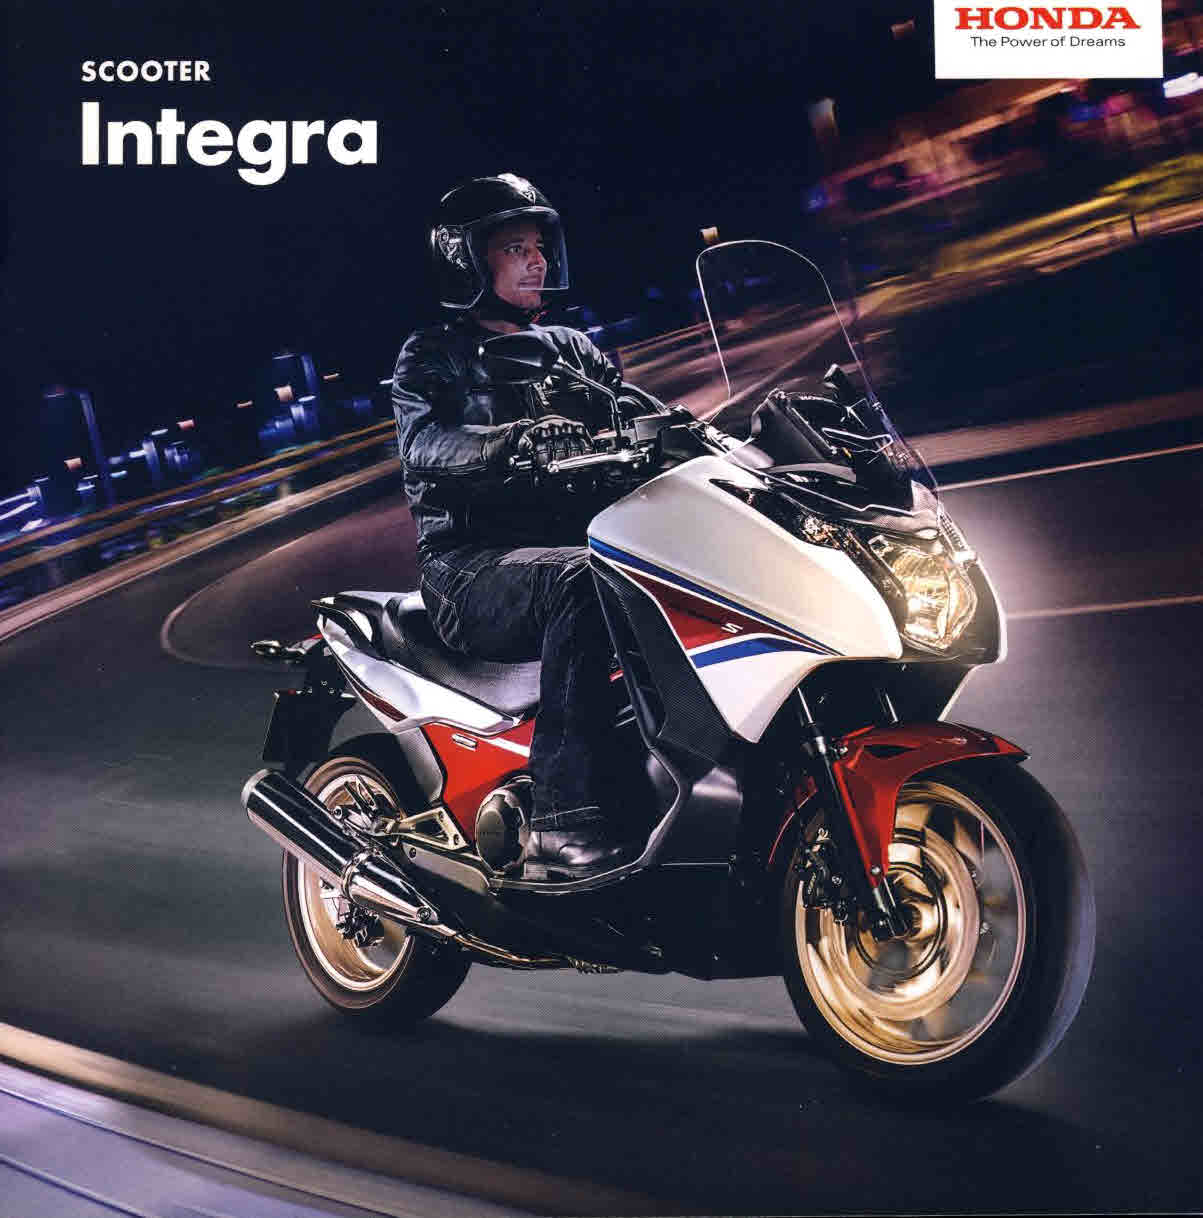 HONDA Scooter Integra 12 Page Brochure 2014 With Fold-out